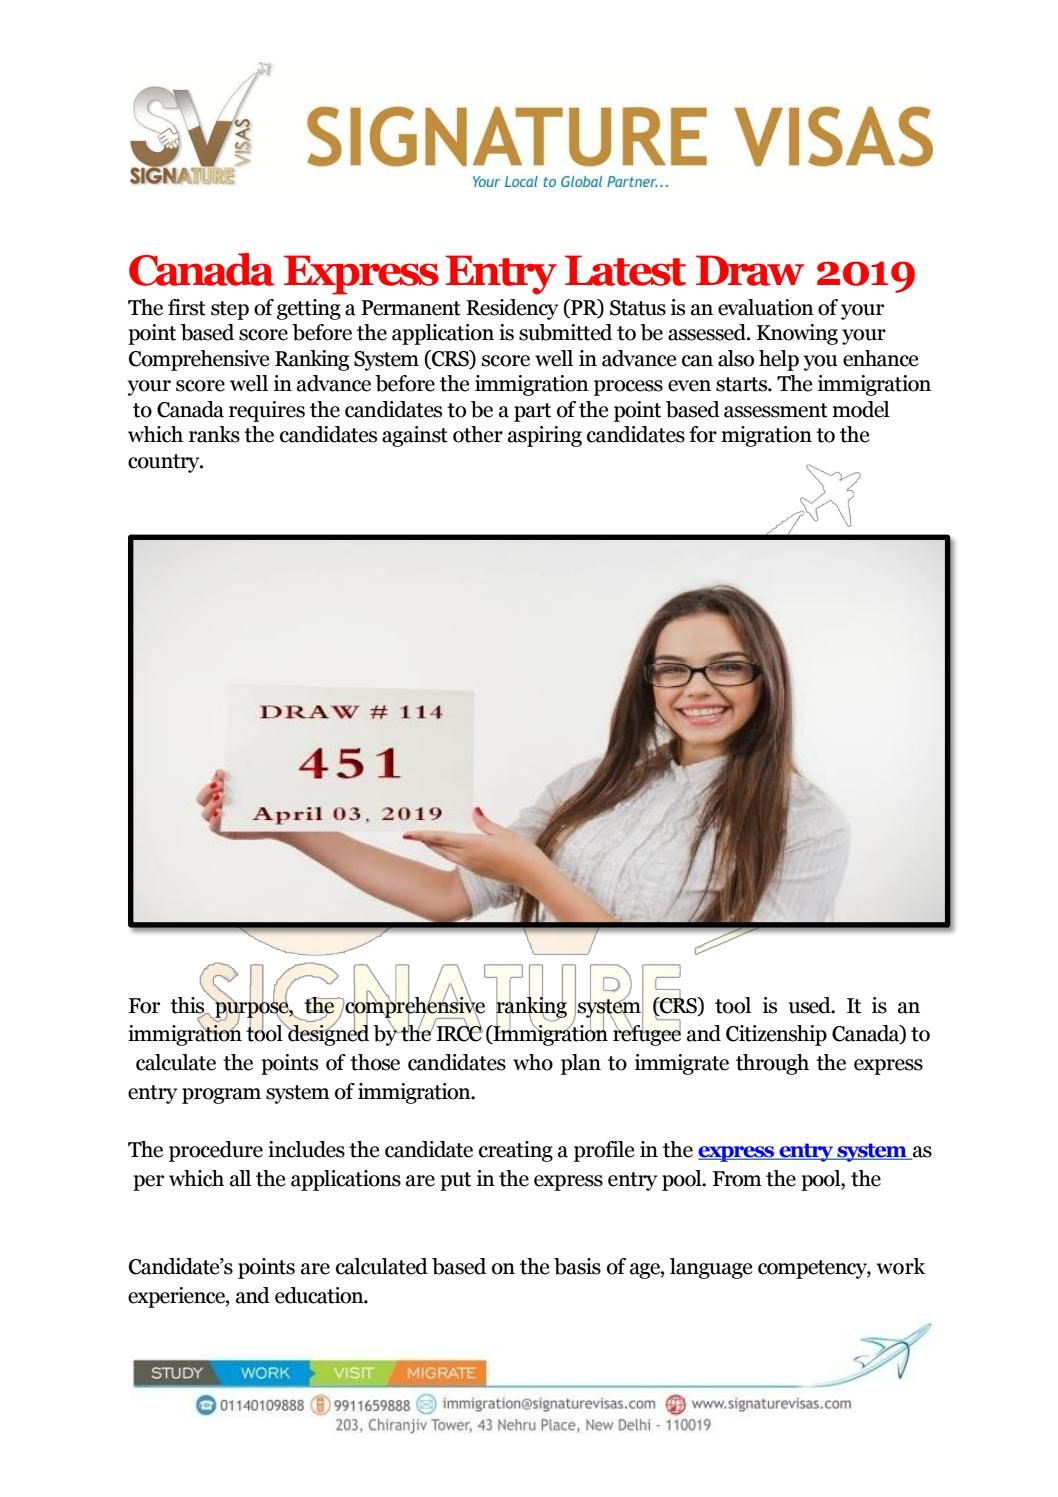 Express Entry Draw - Latest Figures 2019 by